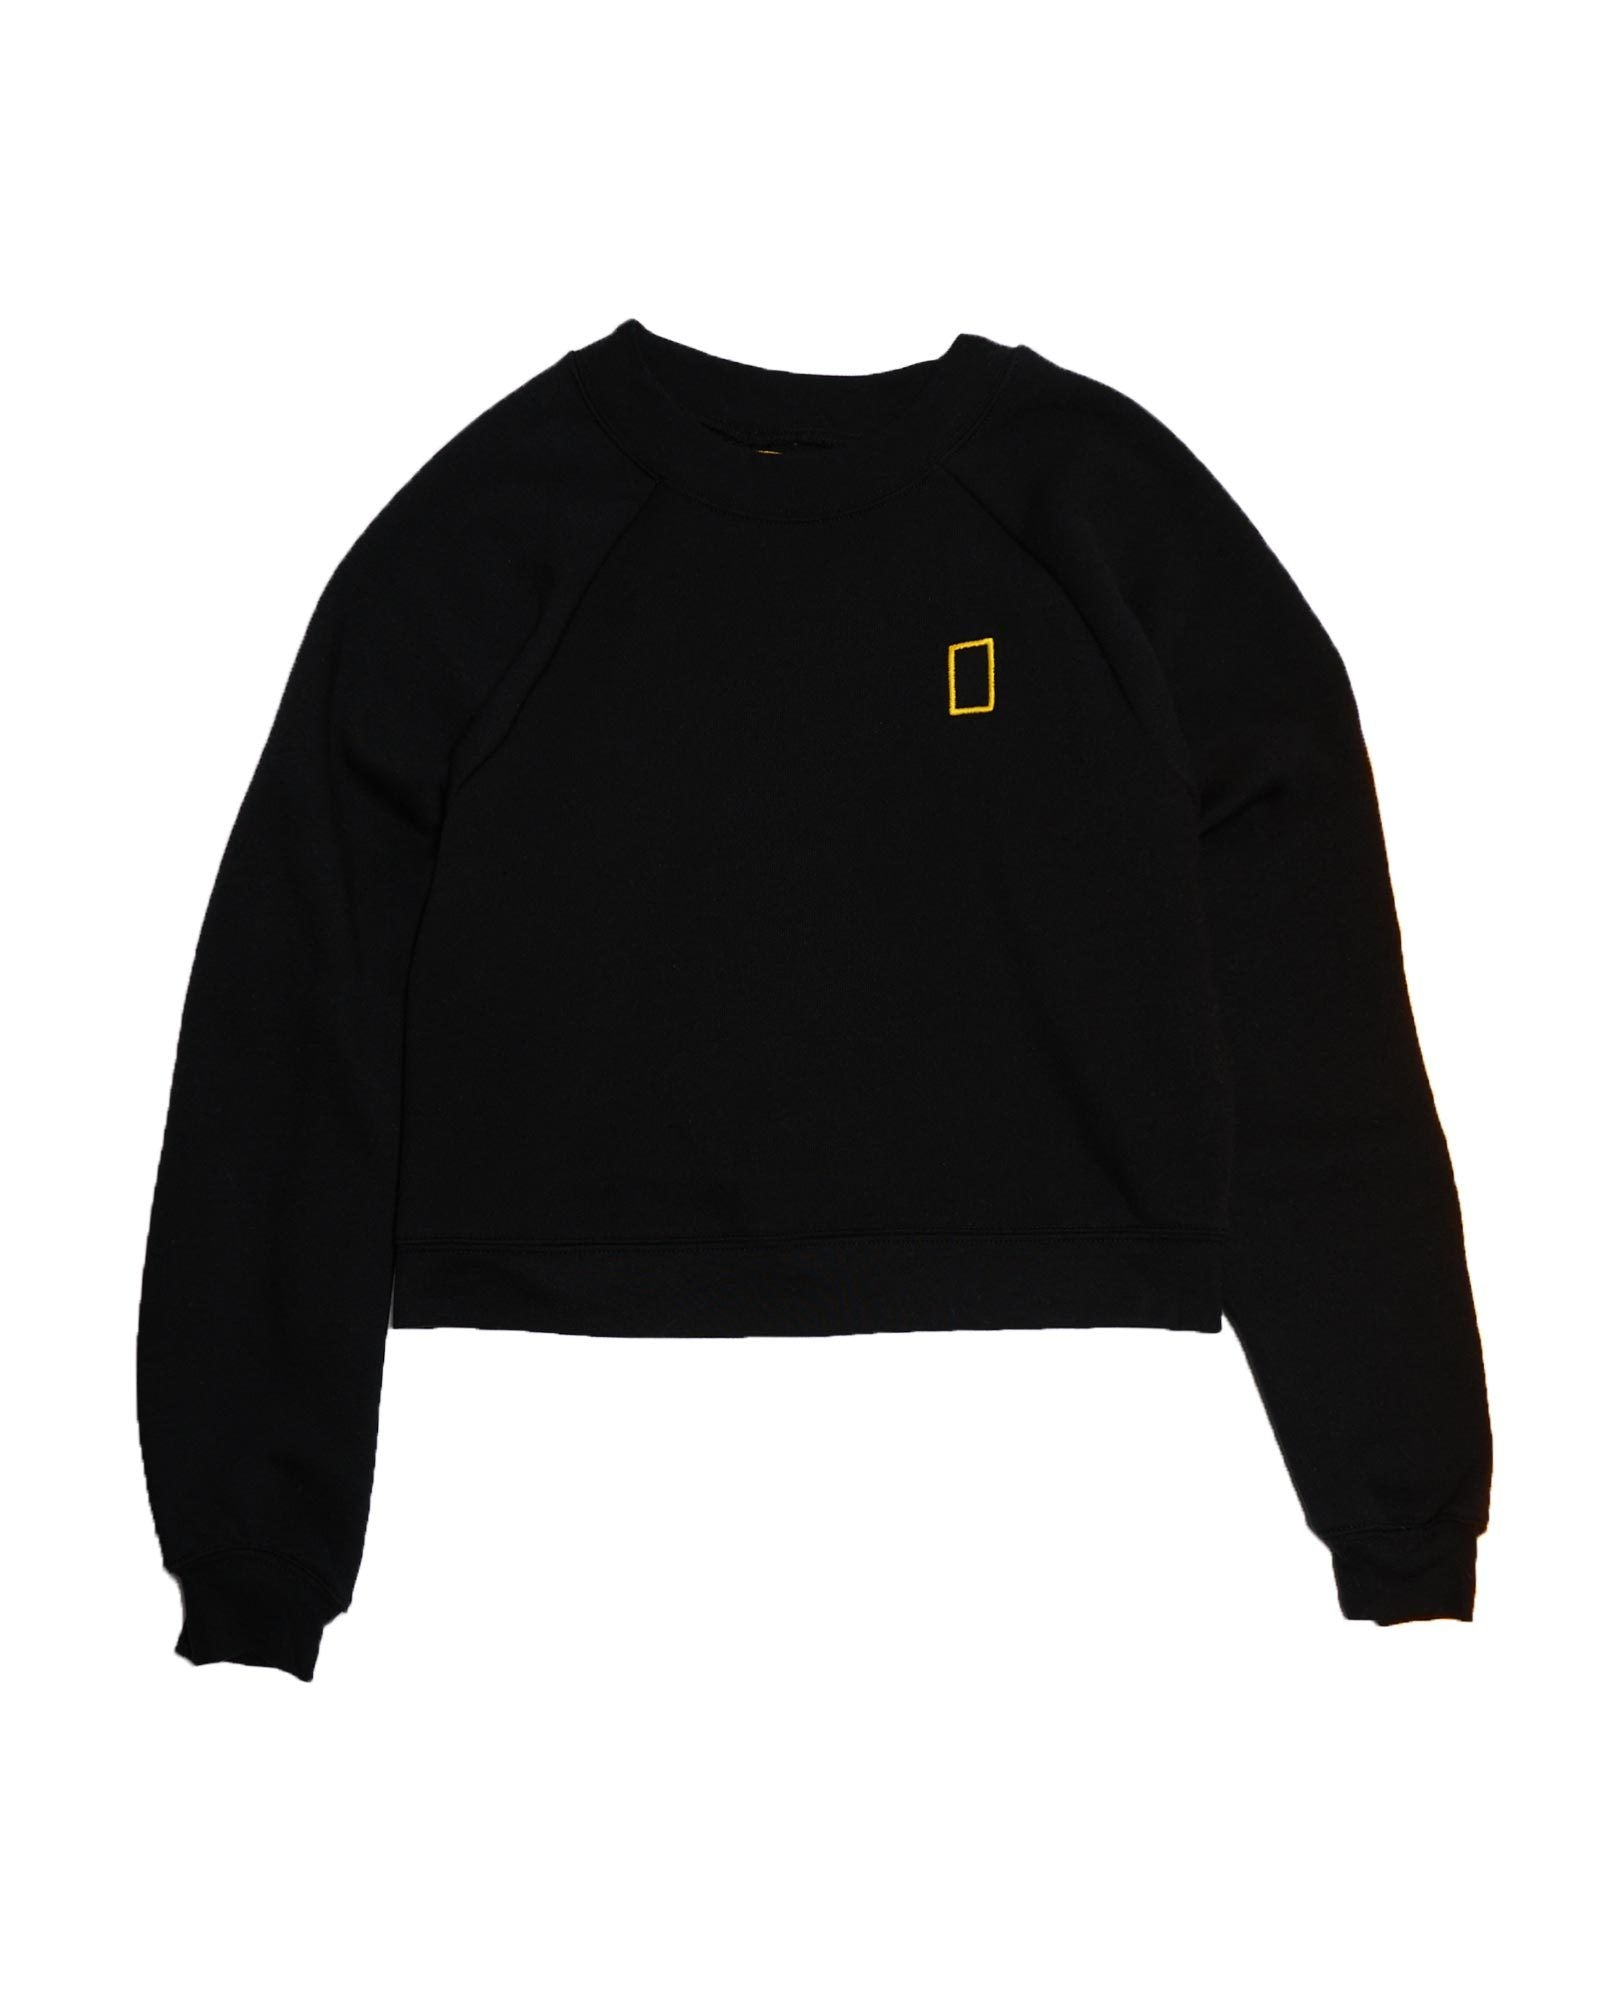 National Geographic x Parks Project Women's Cropped Logo Crew Sweatshirt